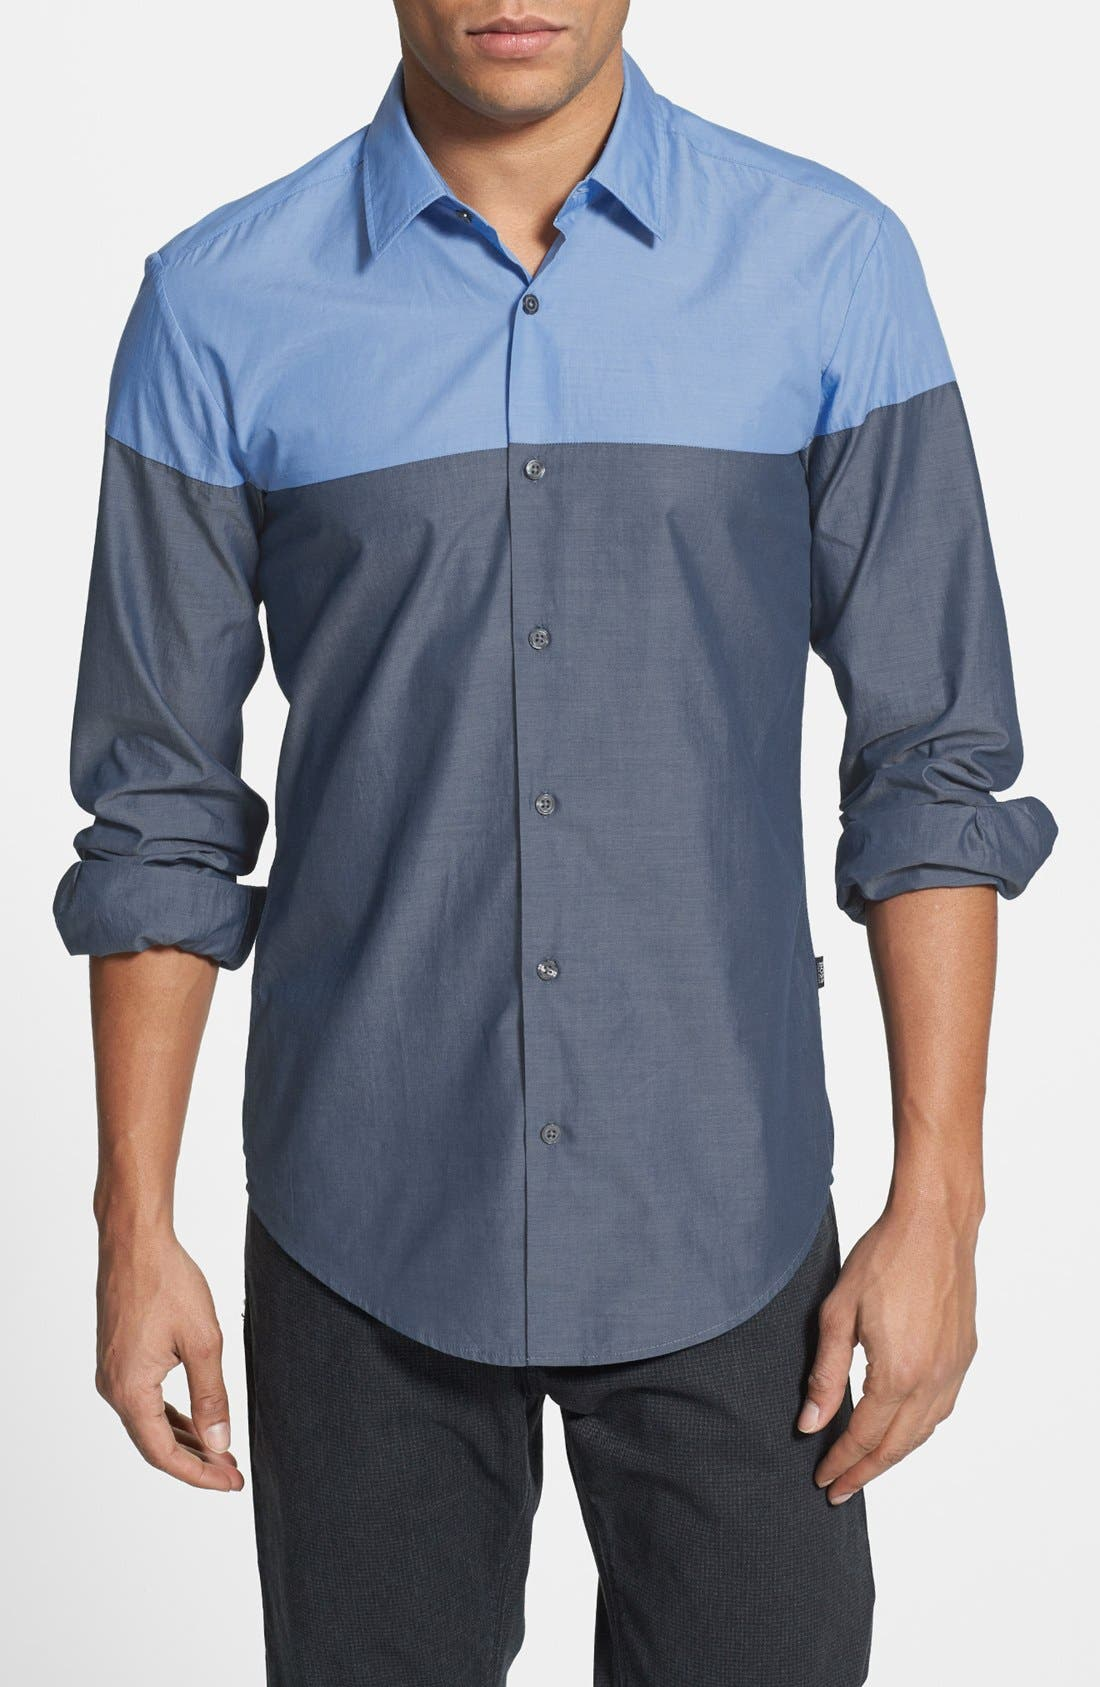 Alternate Image 1 Selected - BOSS HUGO BOSS 'Ronny' Colorblock Sport Shirt